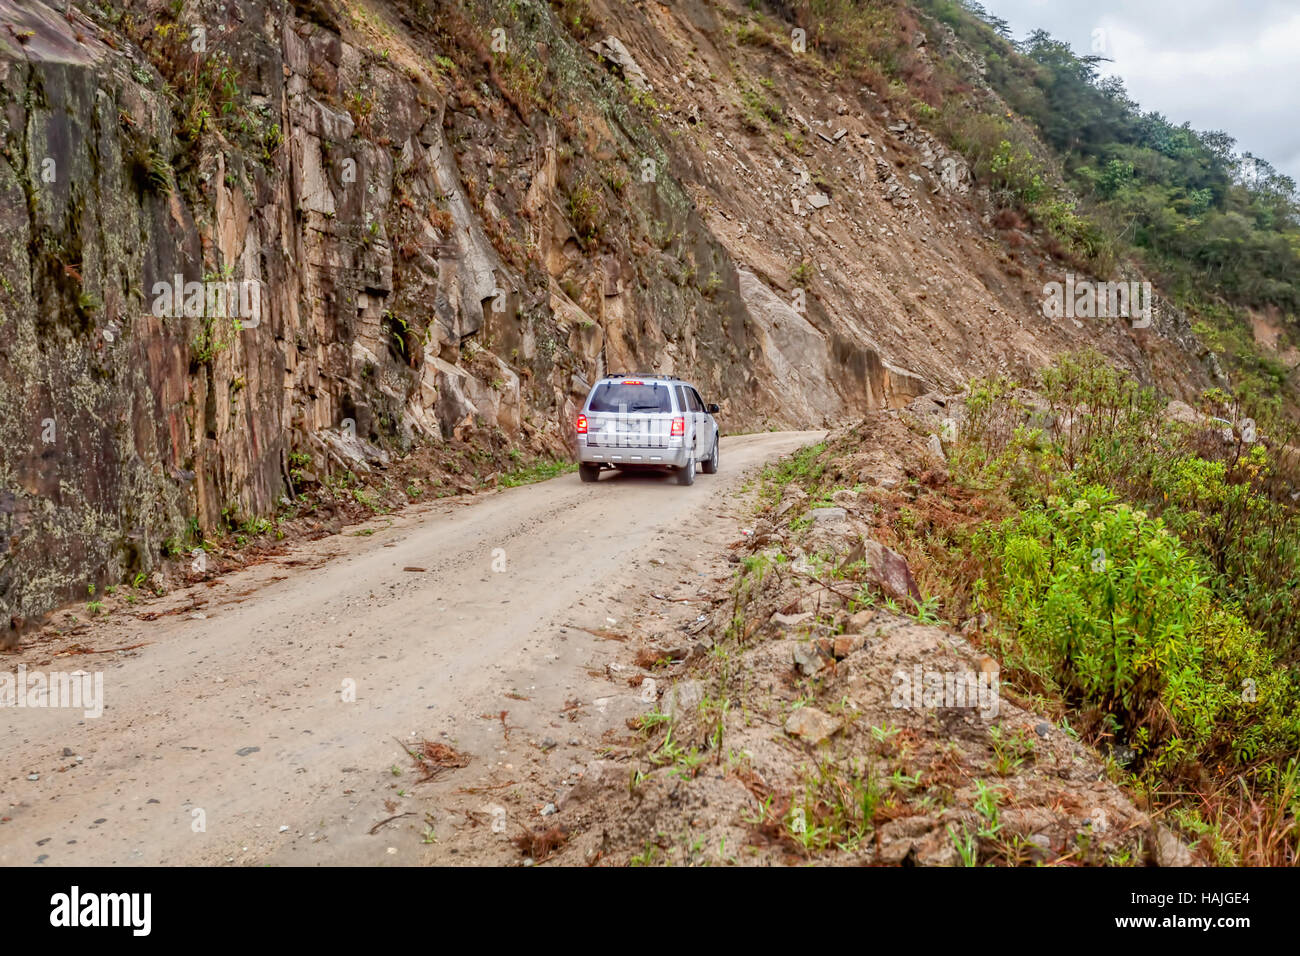 People Traveling In 4X4 Car In The Intag Valley, Ecuador, South America Stock Photo